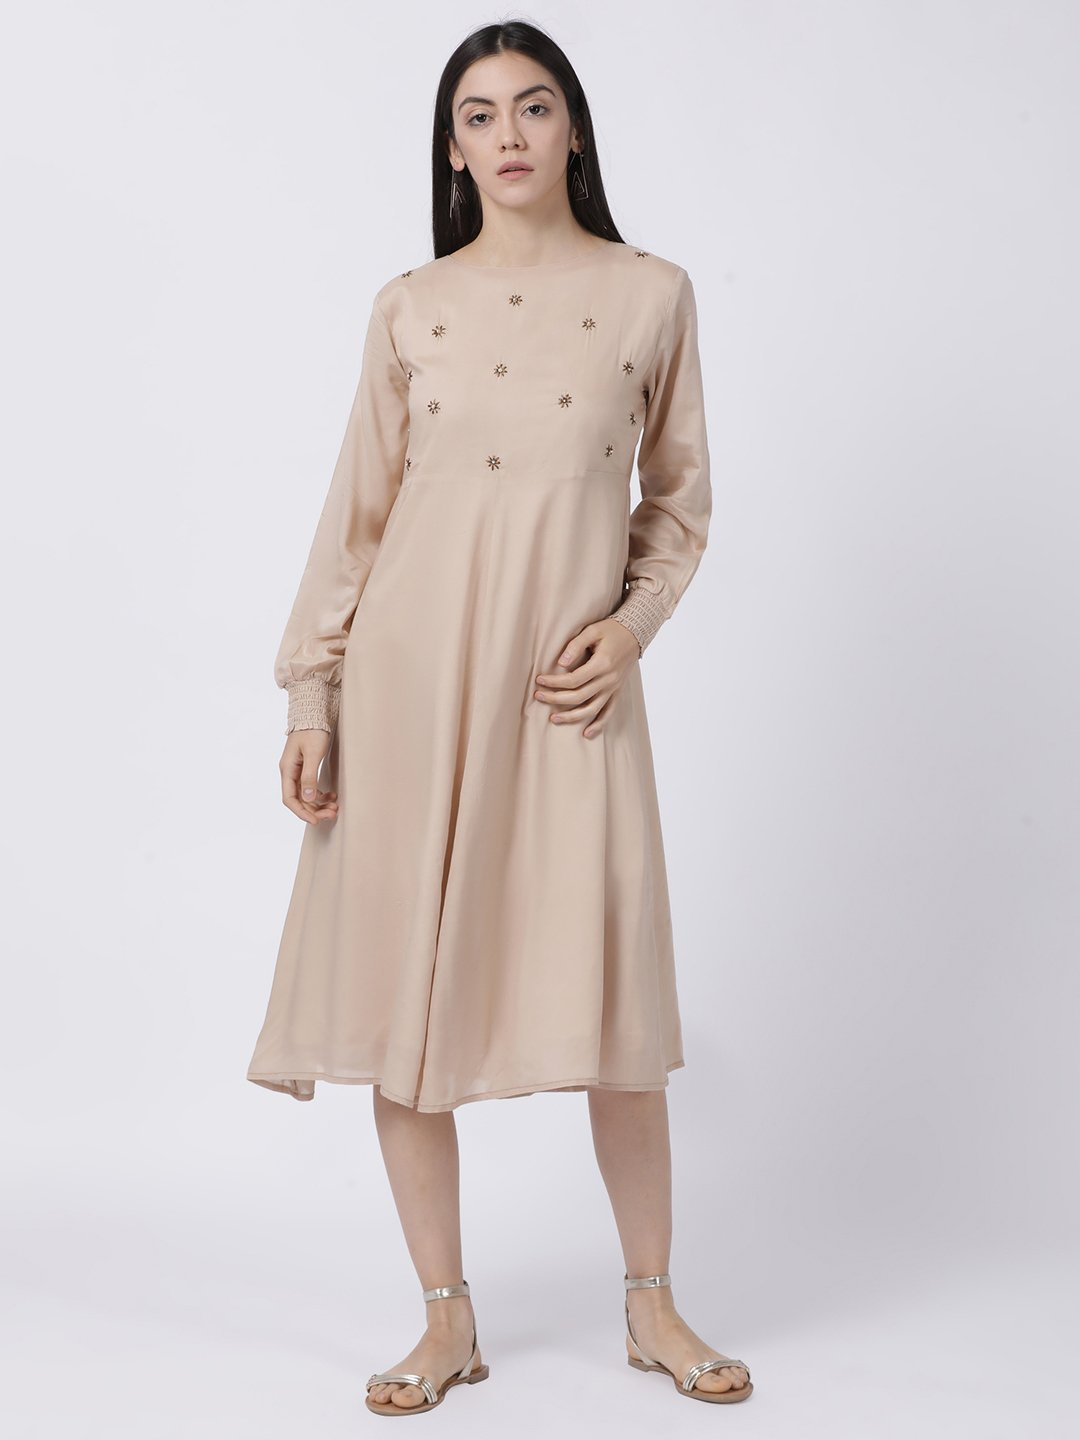 BEIGE SMOCKED SLEEVE DRESS